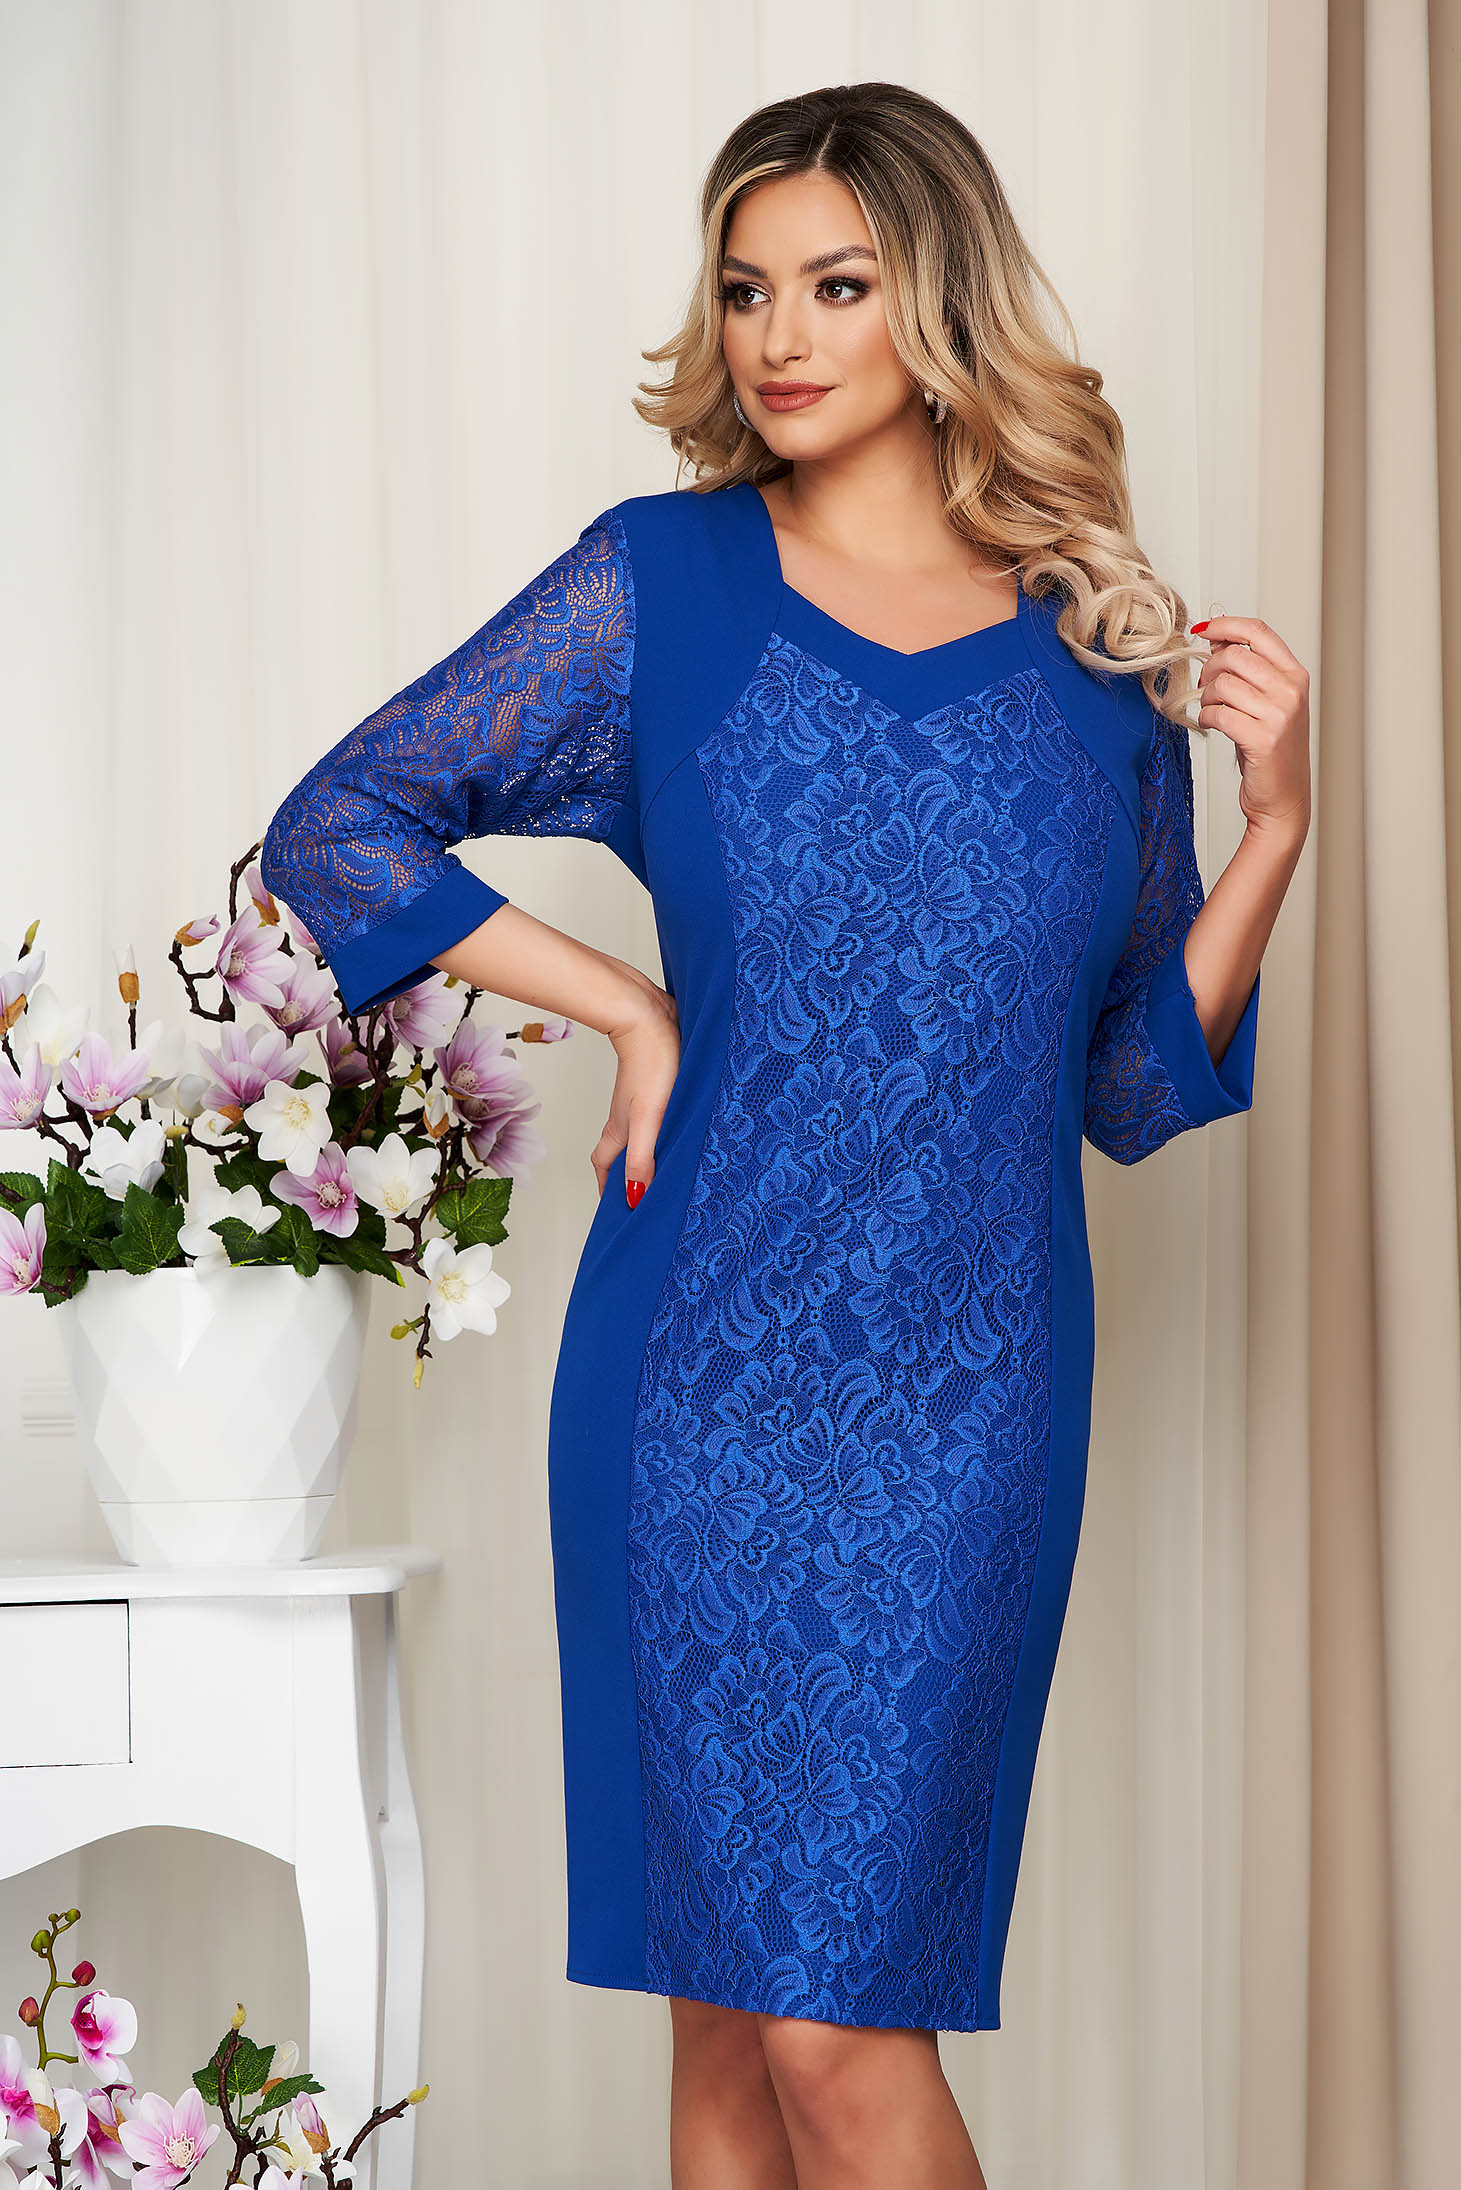 Blue dress pencil from elastic fabric with lace details